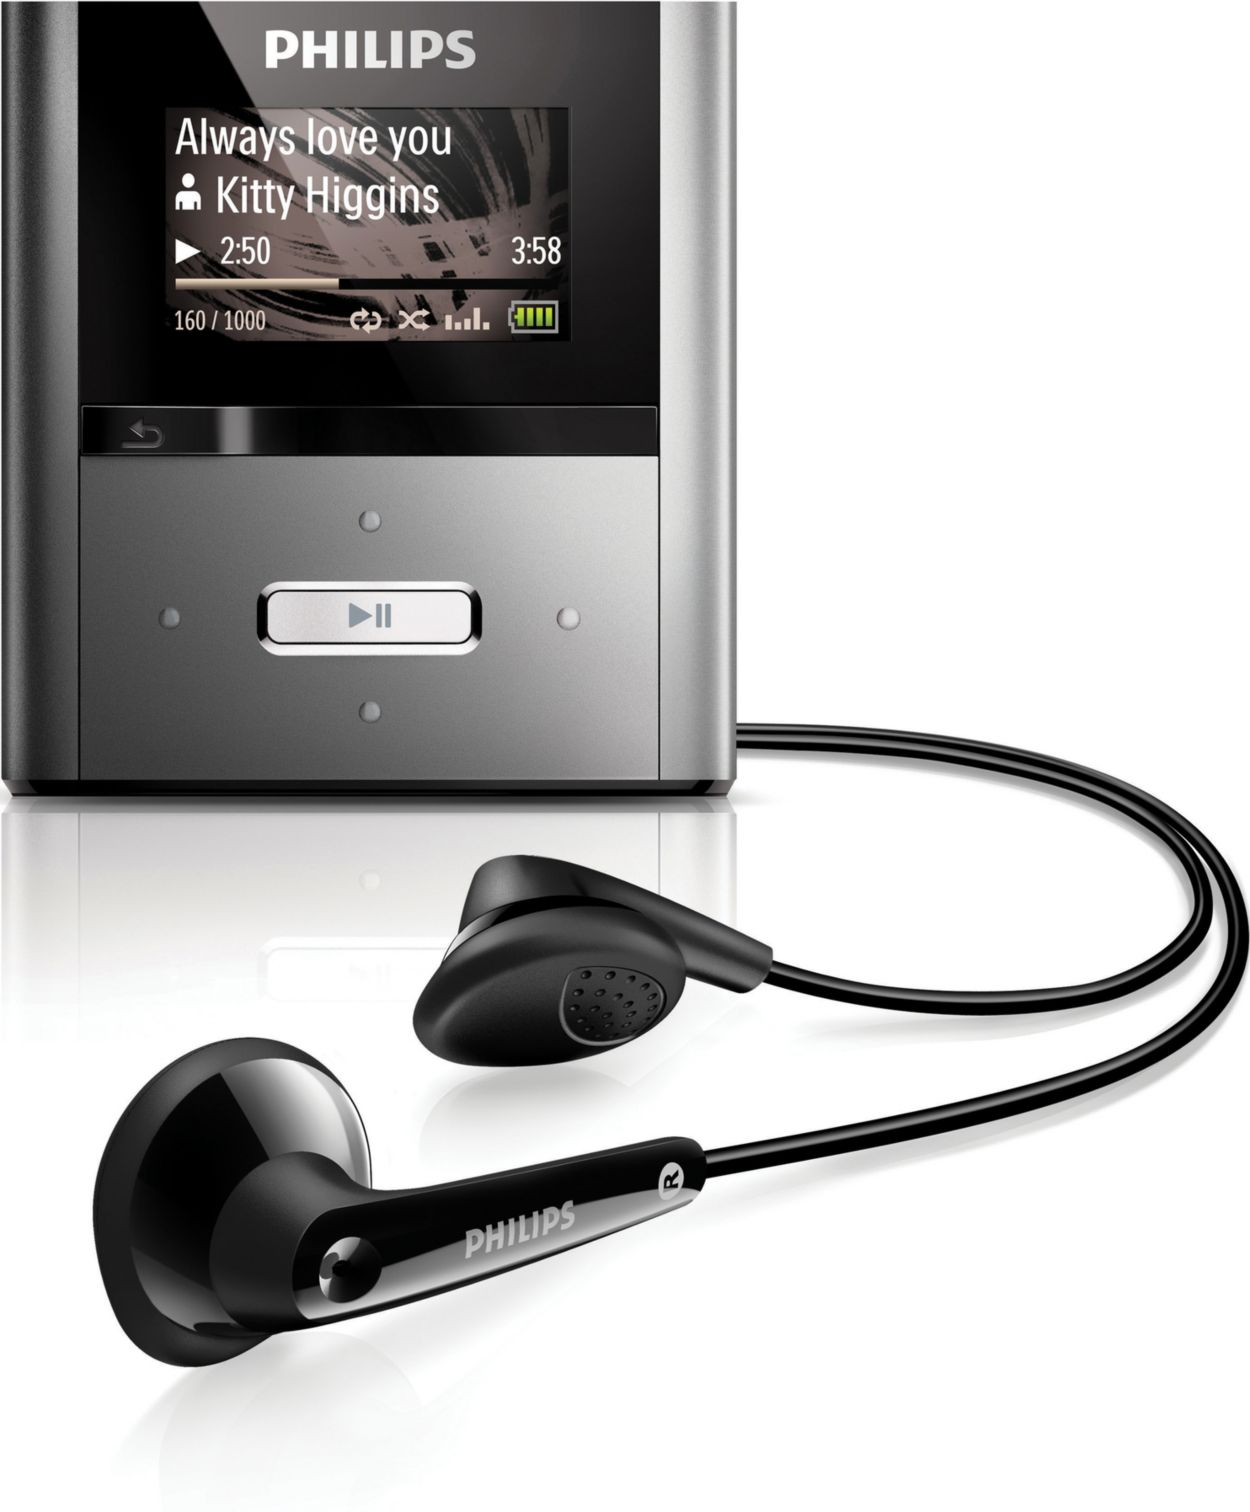 philips mp3 player software